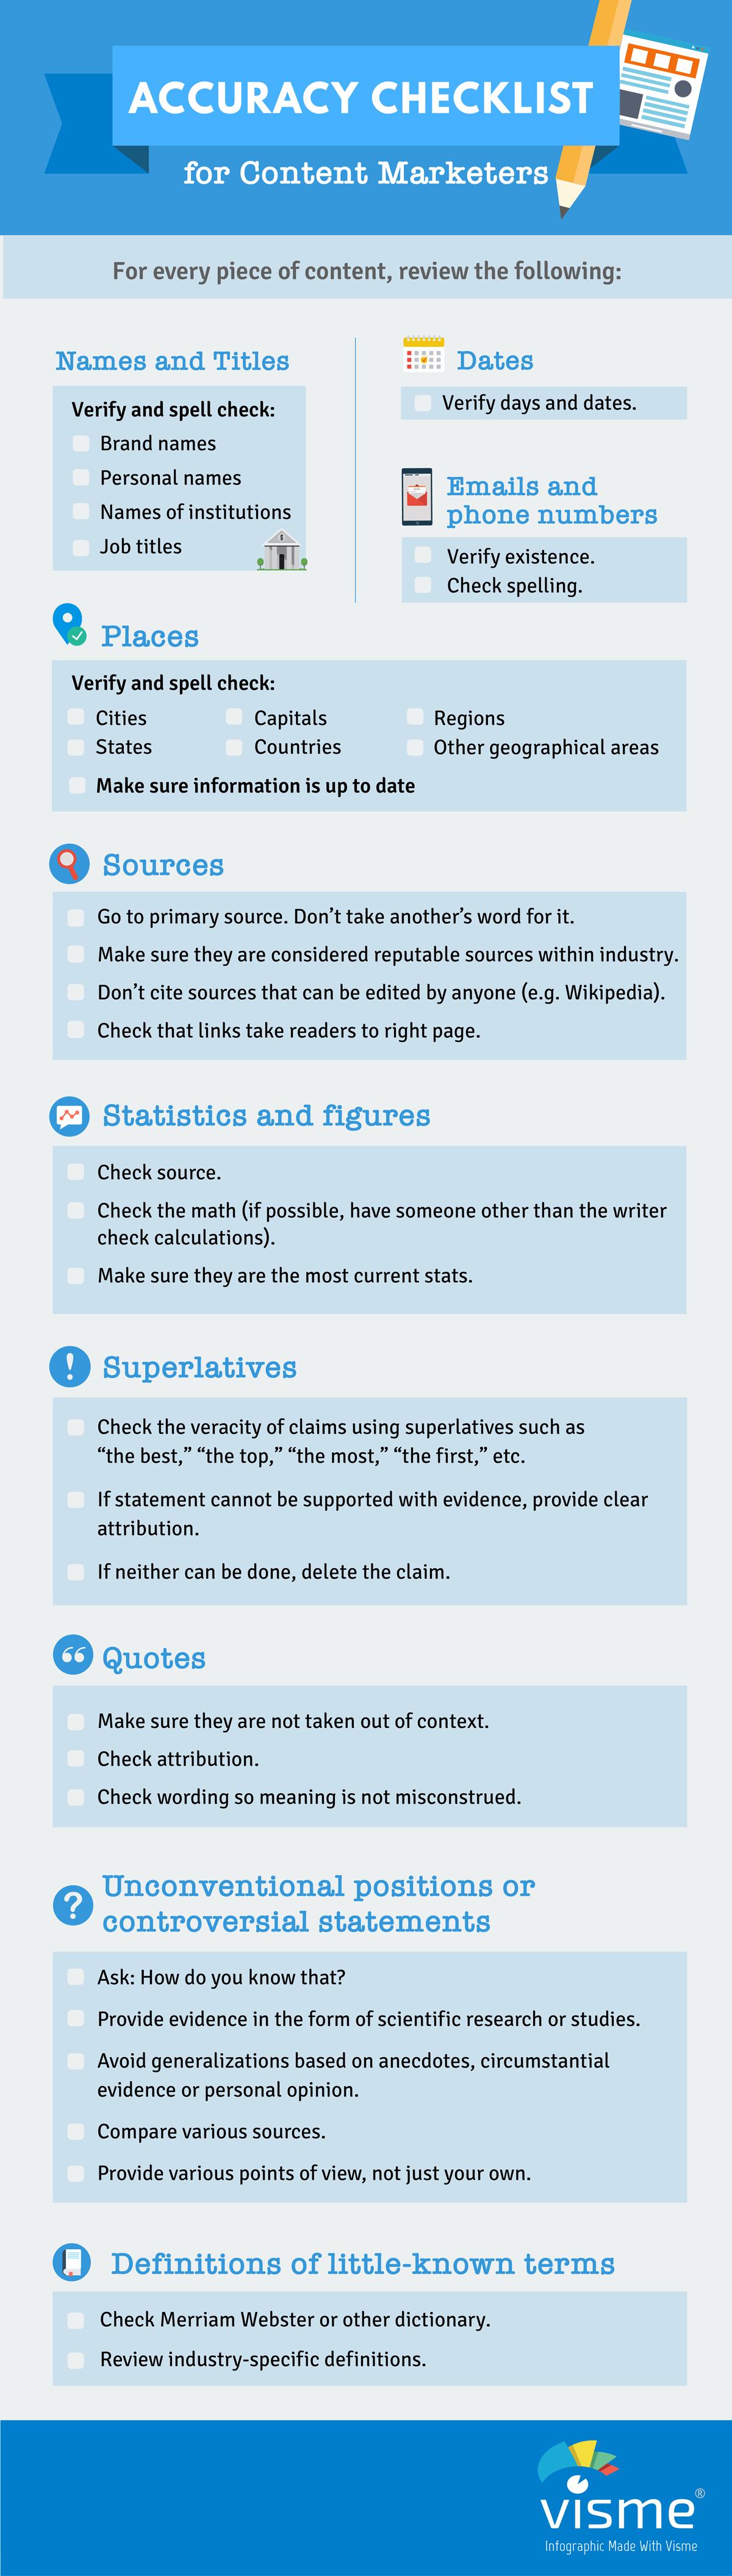 Accuract Checklist for Content Marketers